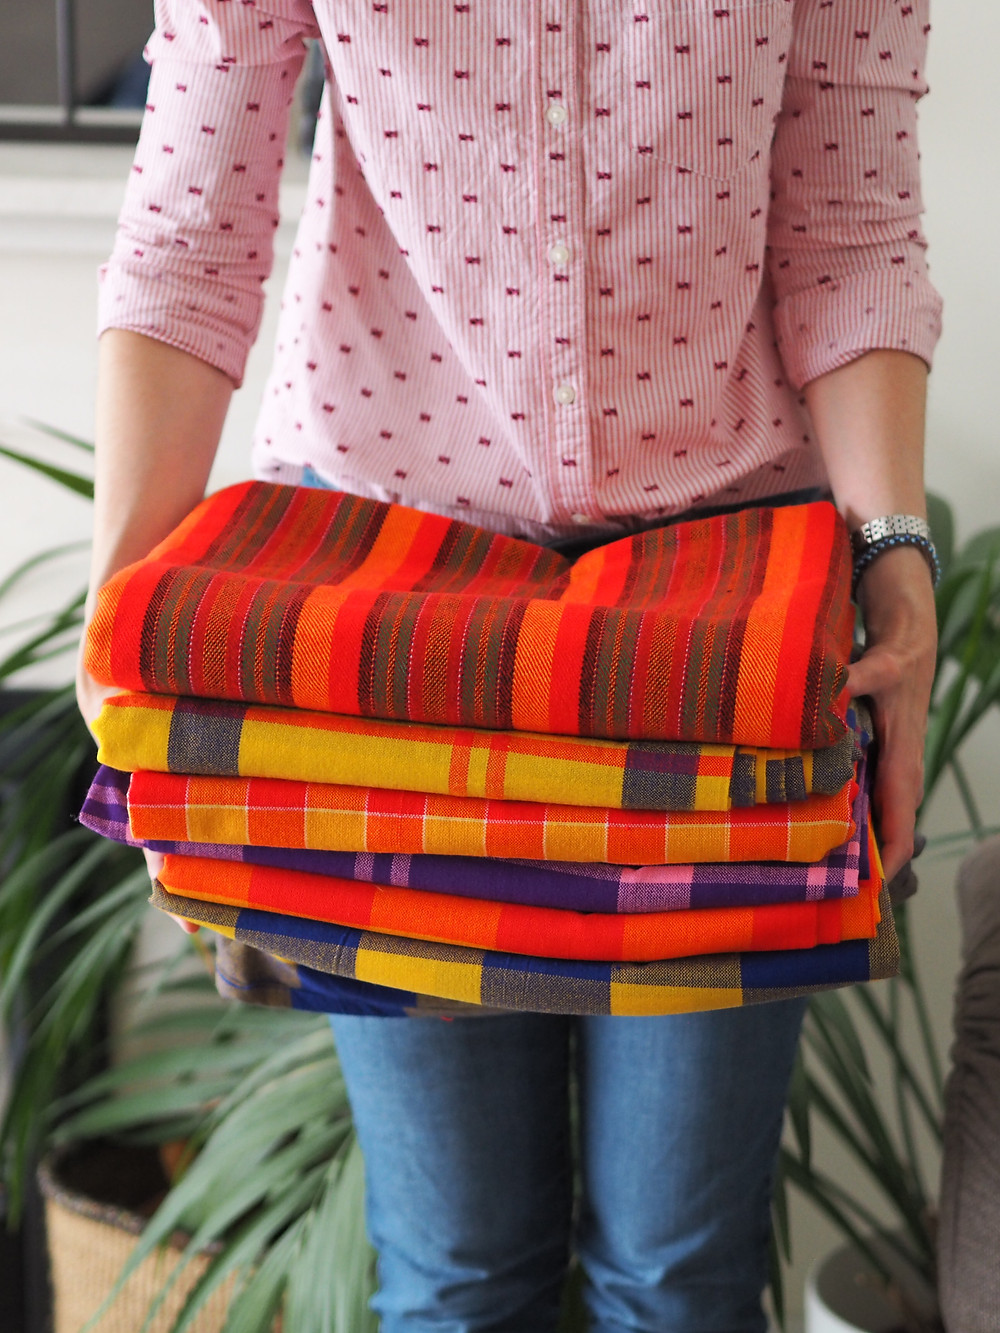 Traditional Masai Throw Blankets Available to Buy From Wild Home Online on Etsy